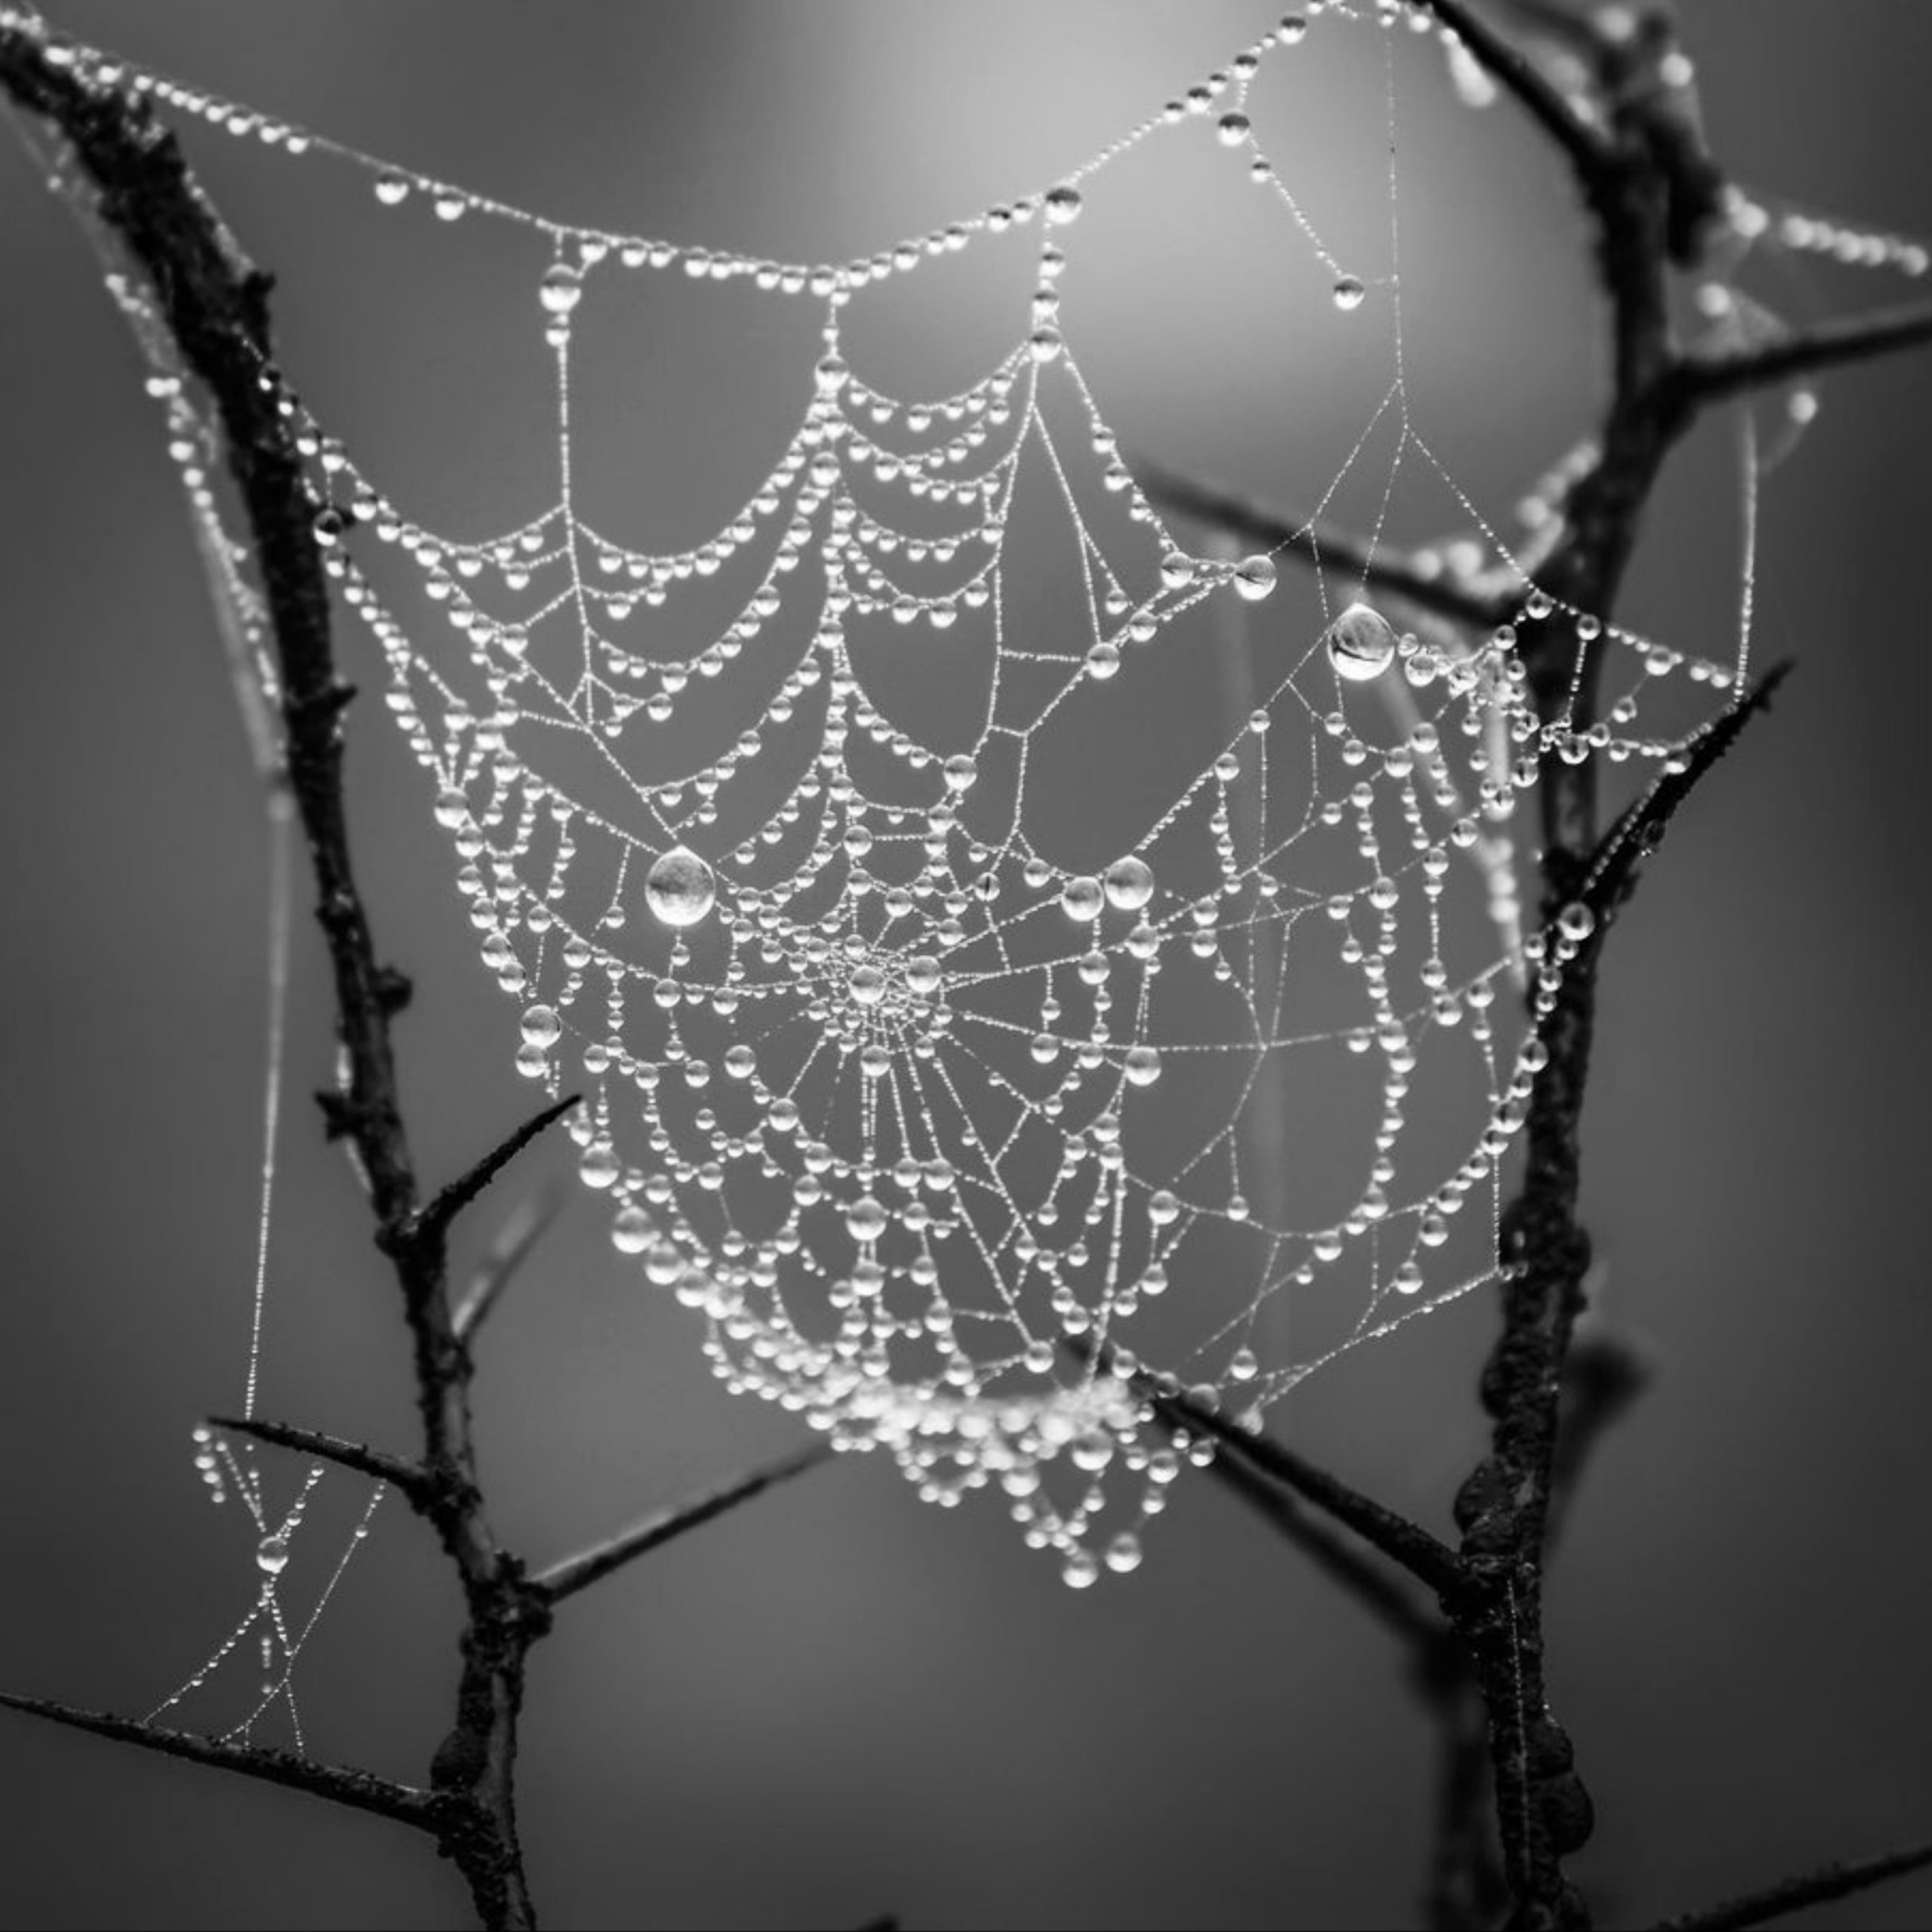 Dew drops on a spiderweb